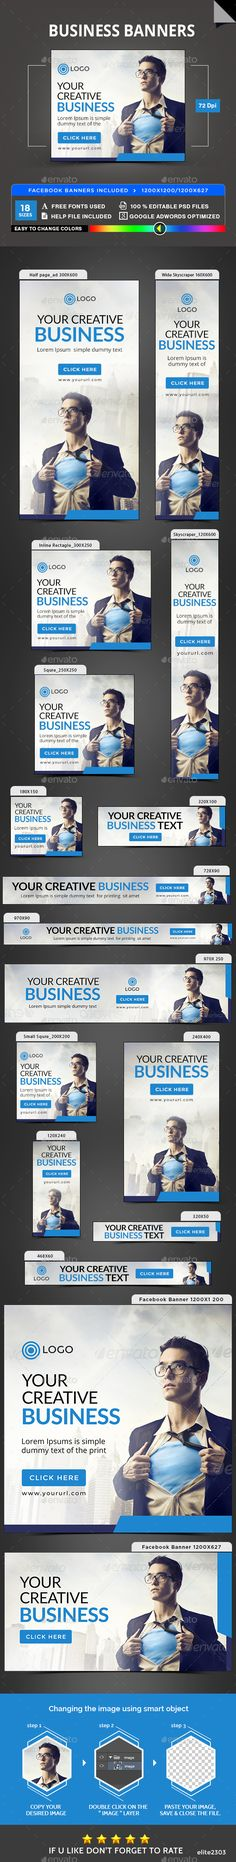 Business Banners — Photoshop PSD #discount #web banner • Available here → https://graphicriver.net/item/business-banners/20046096?ref=pxcr